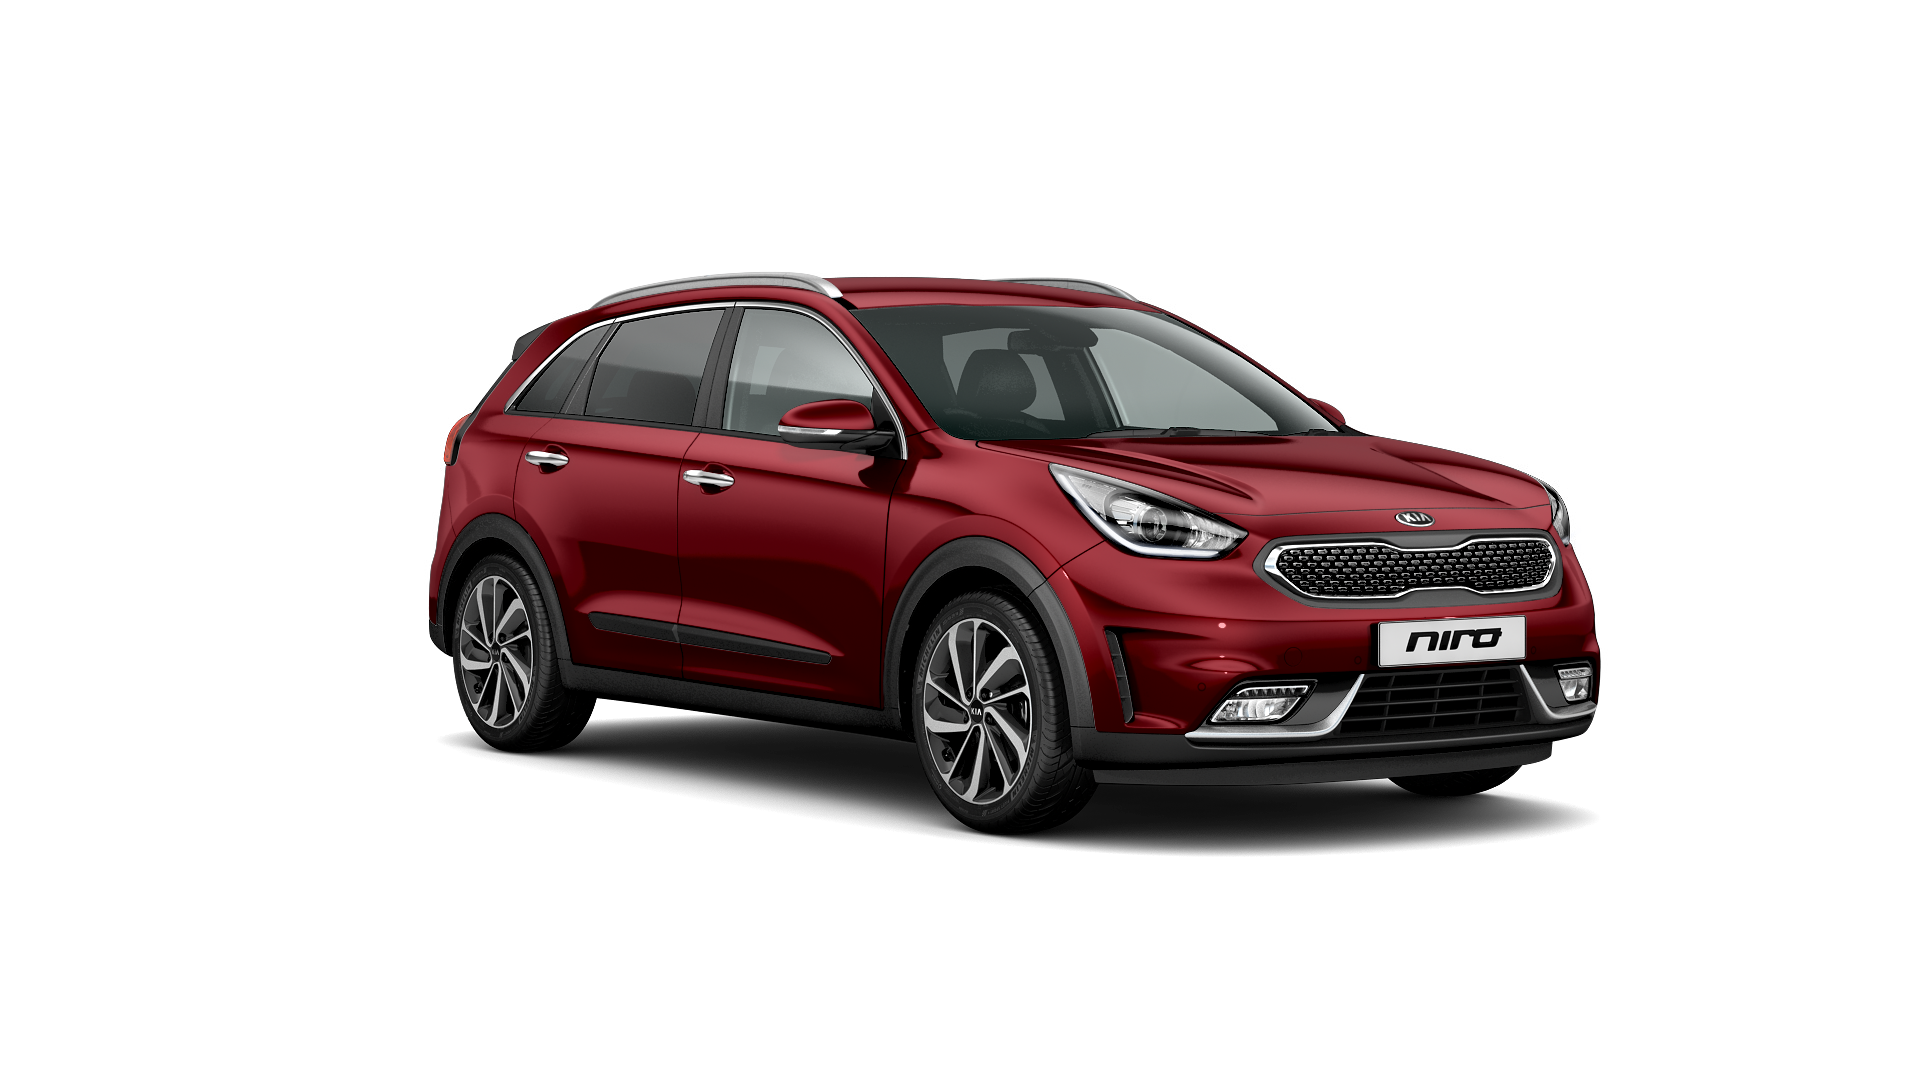 Kia Niro Temptation Red